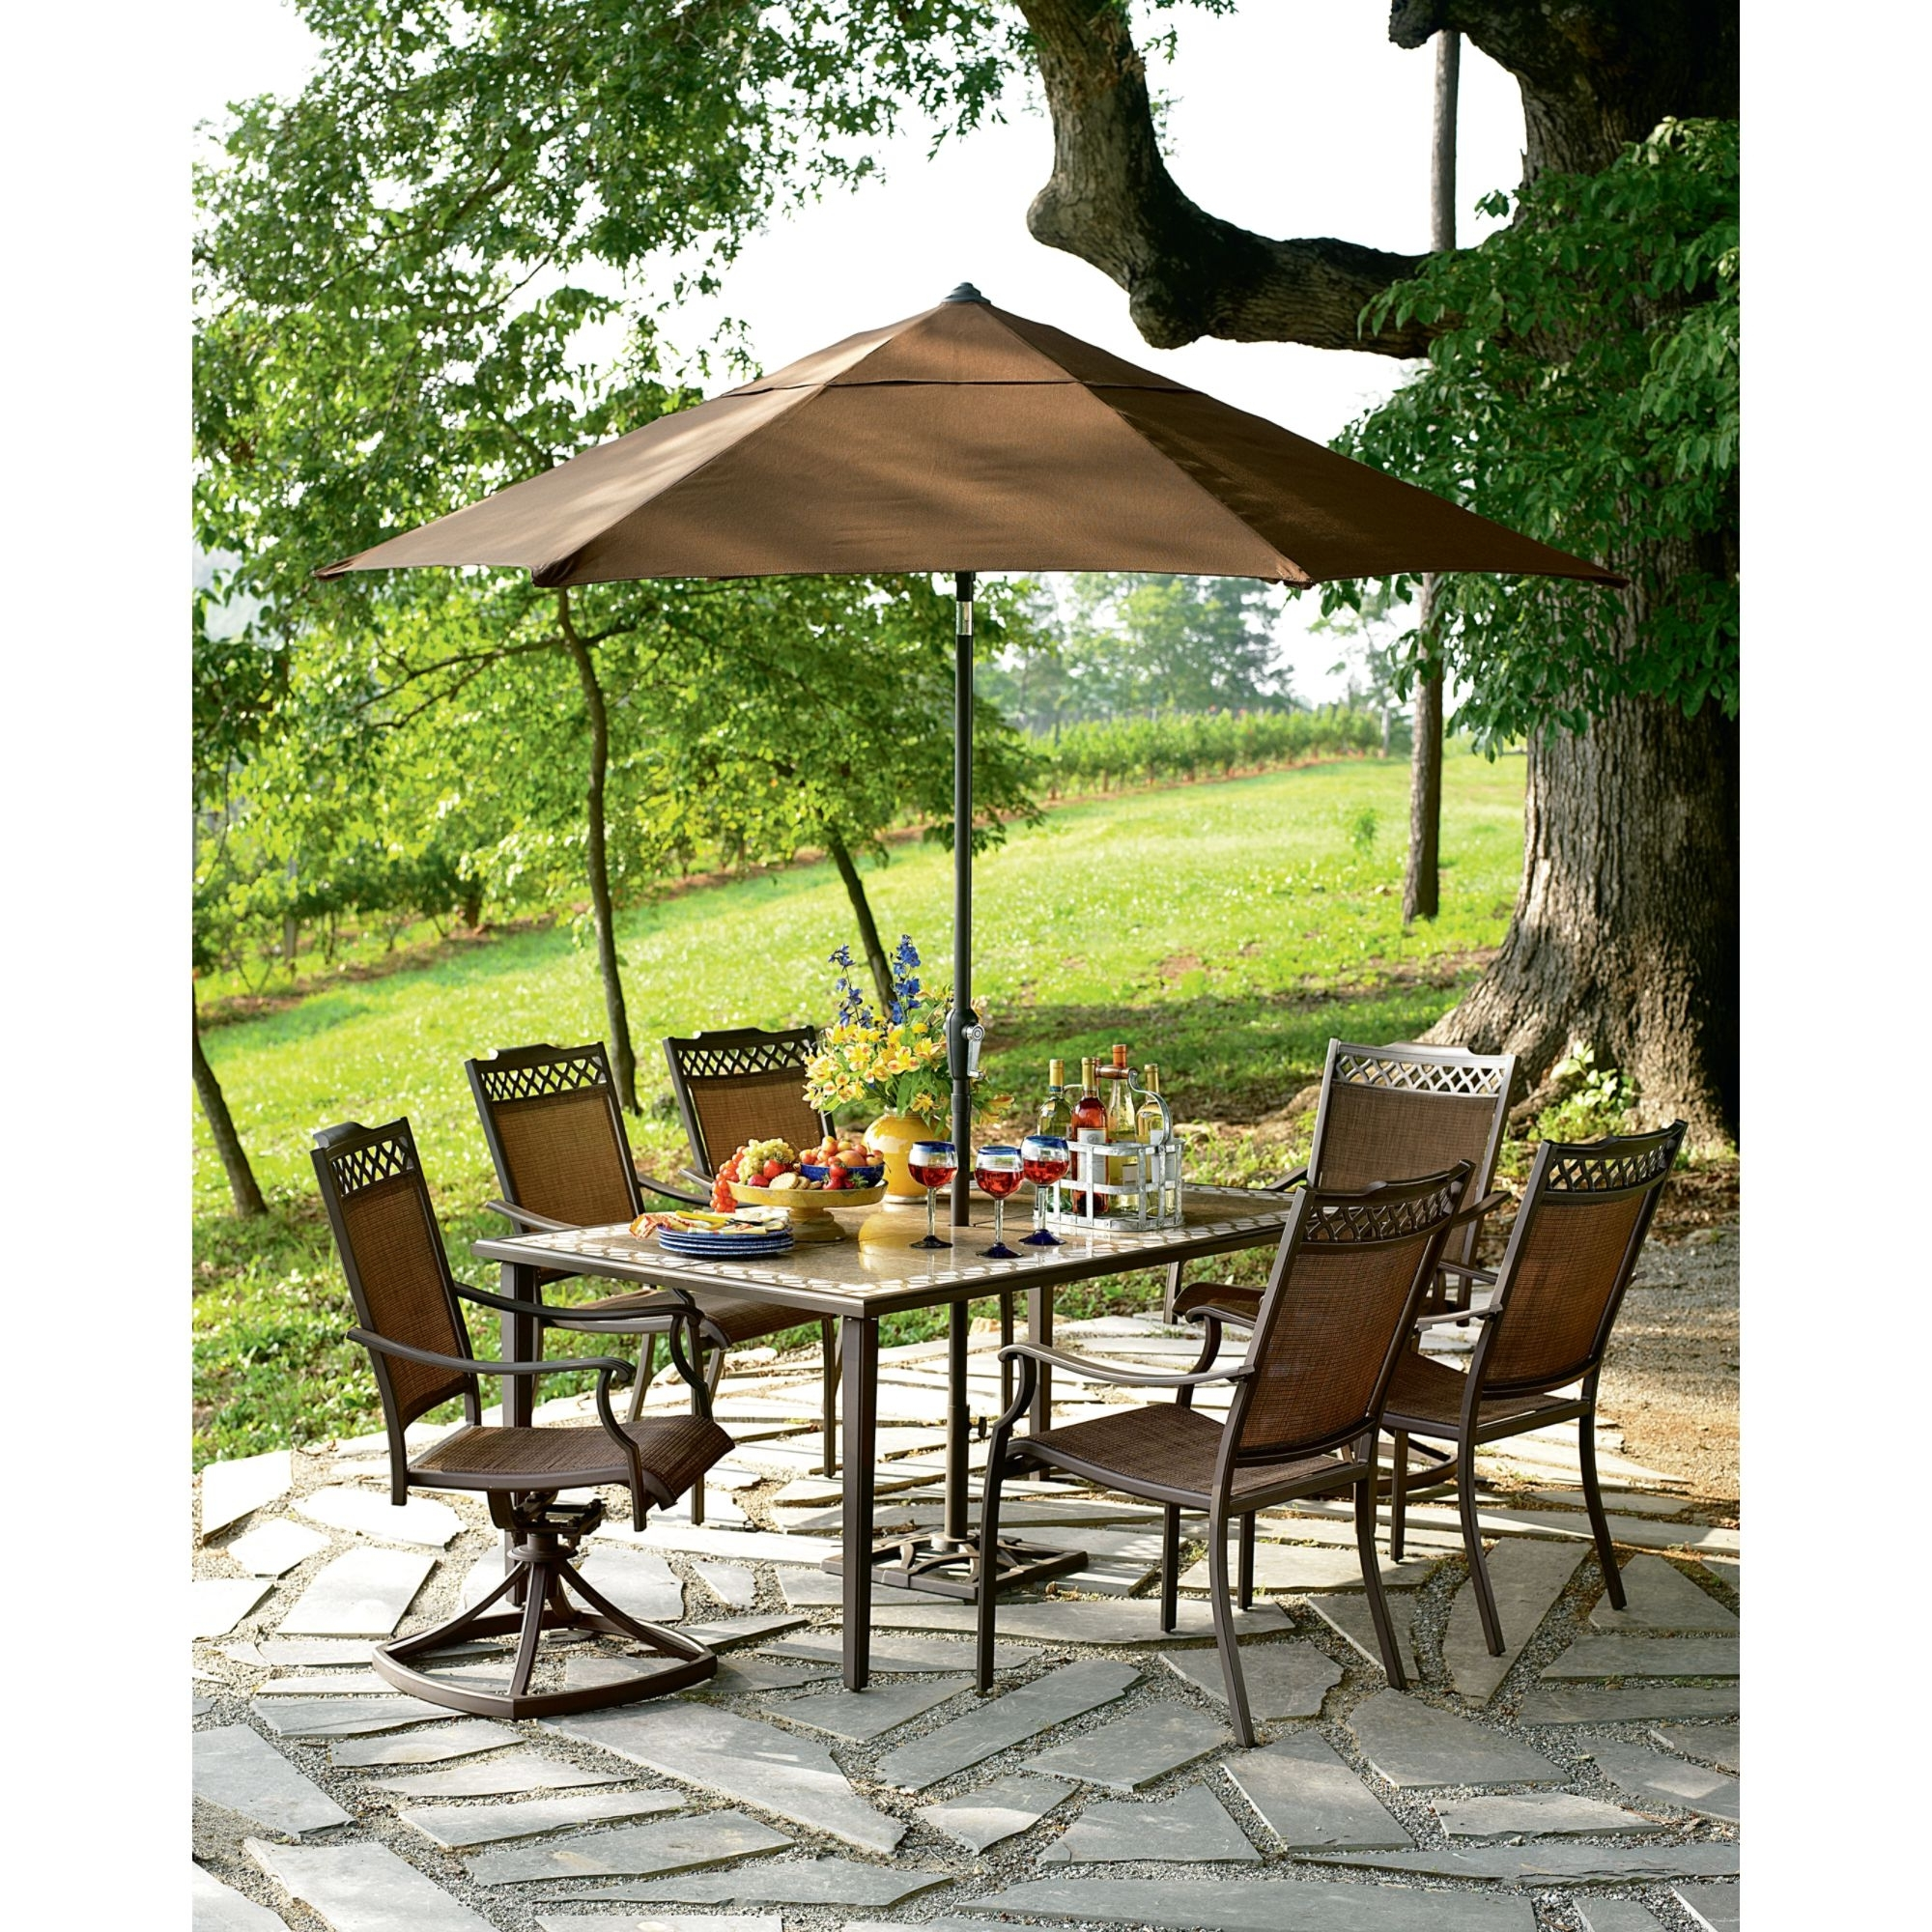 Best And Newest Chaise Lounge Chairs At Sears With Regard To Patios: Enjoying Your Meals Outdoors With Sears Outlet Patio (View 3 of 15)